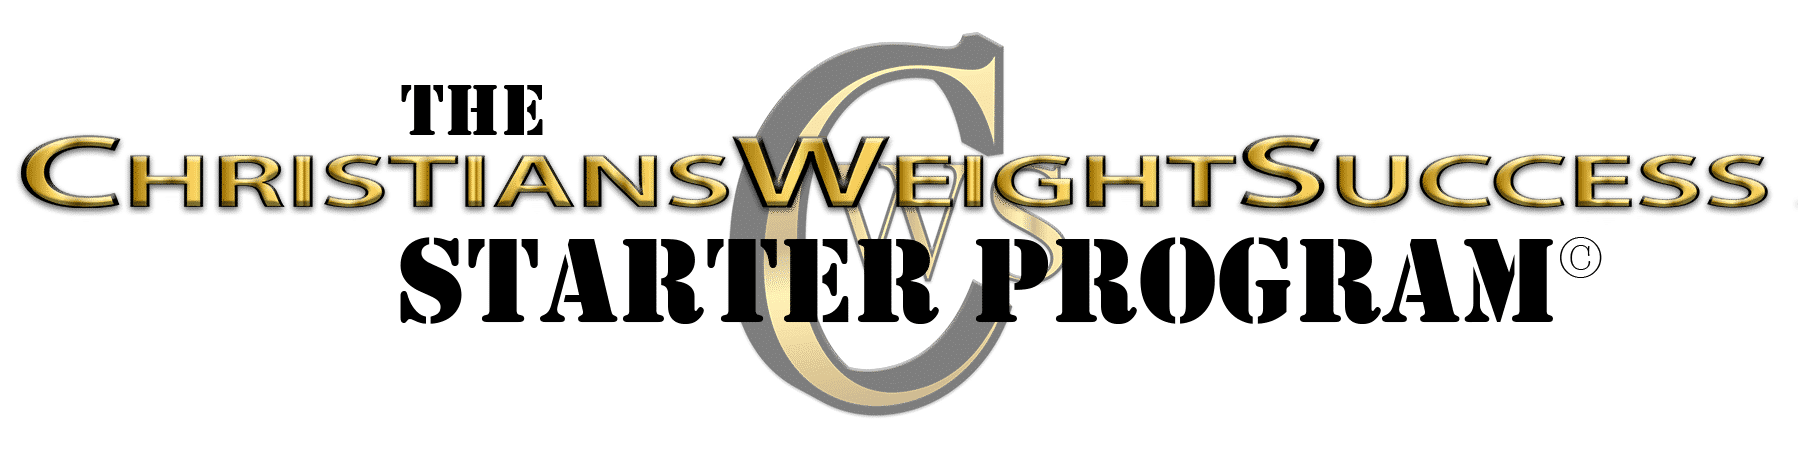 CHRISTIANS WEIGHT SUCCESS STARTER PROGRAM